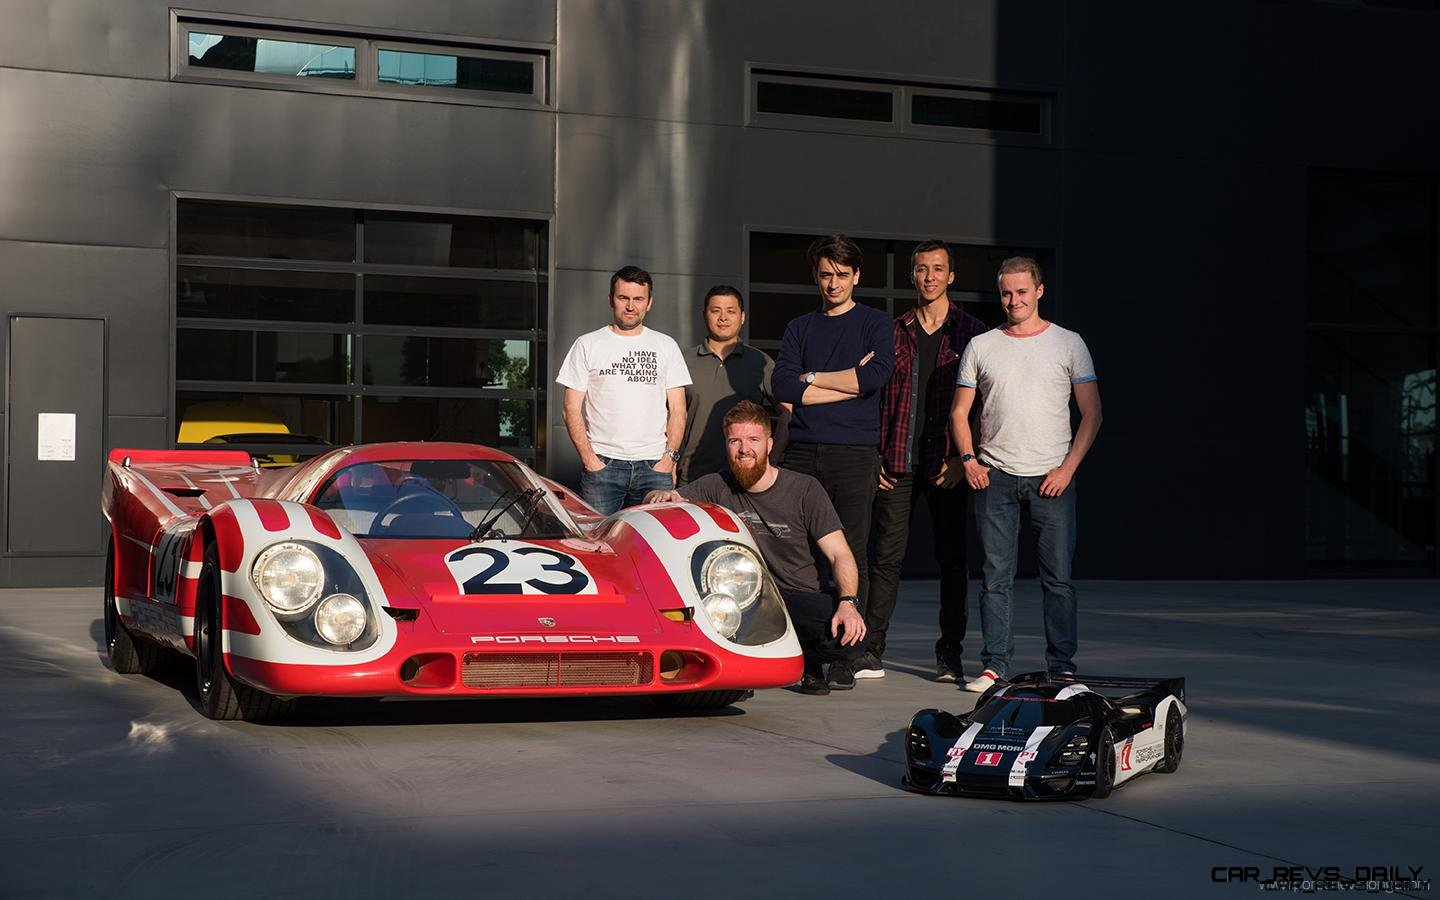 Part Two – 2017 Porsche 908 RSR Vision GT Hommage Meets 919 and 917K